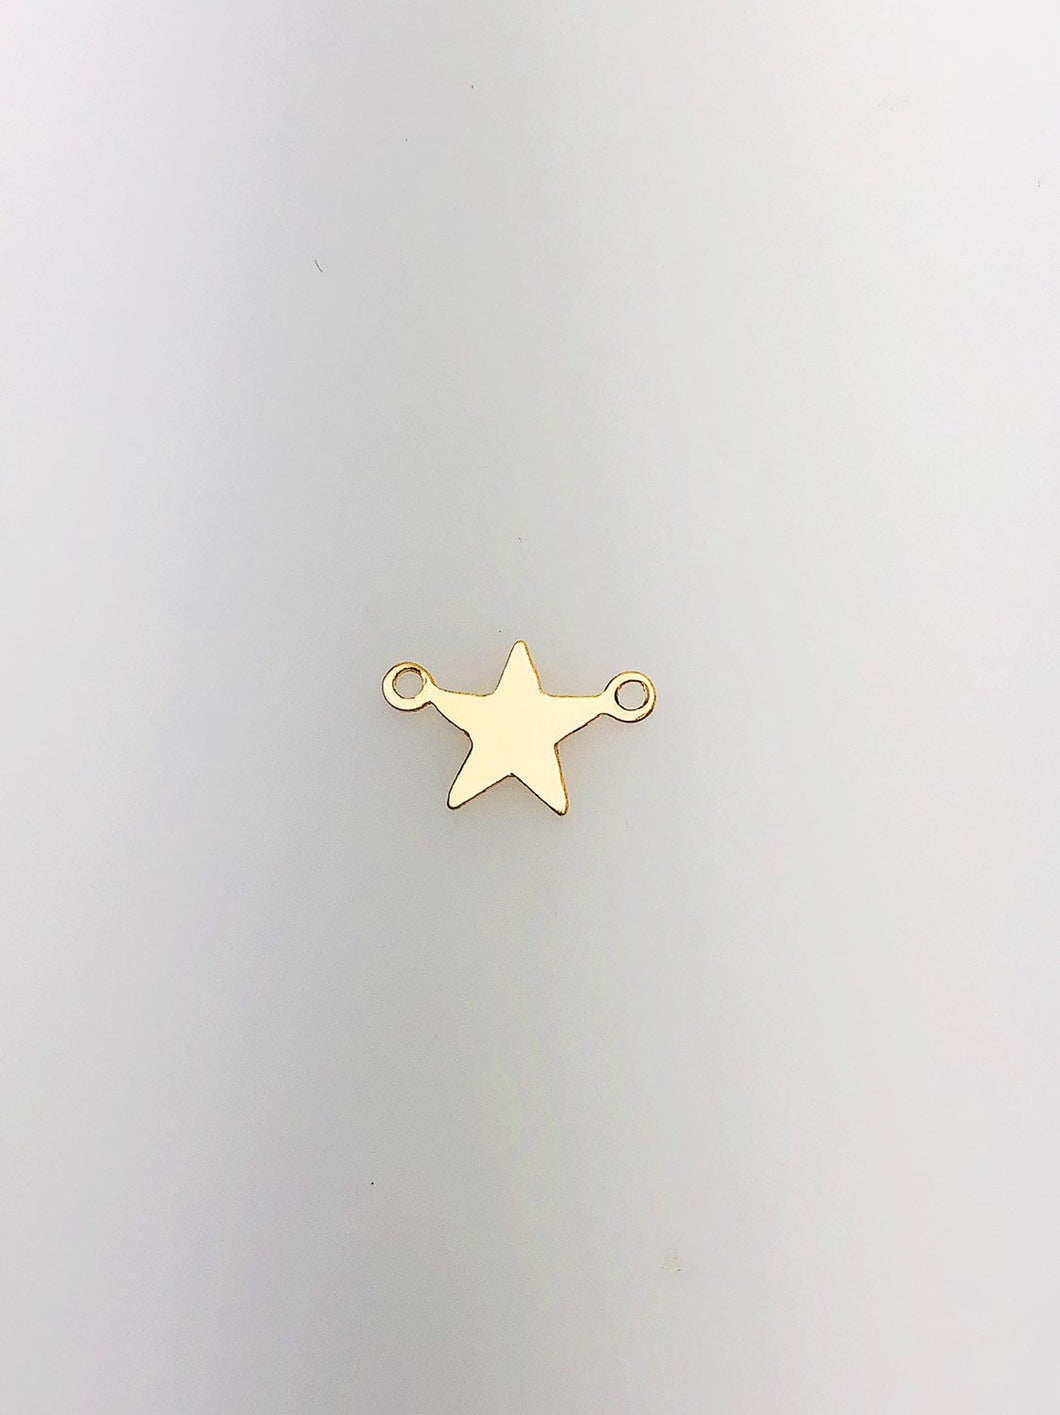 14K Gold Fill Star Charm w/ two Rings, 11.4x7.4mm, Made in USA - 111